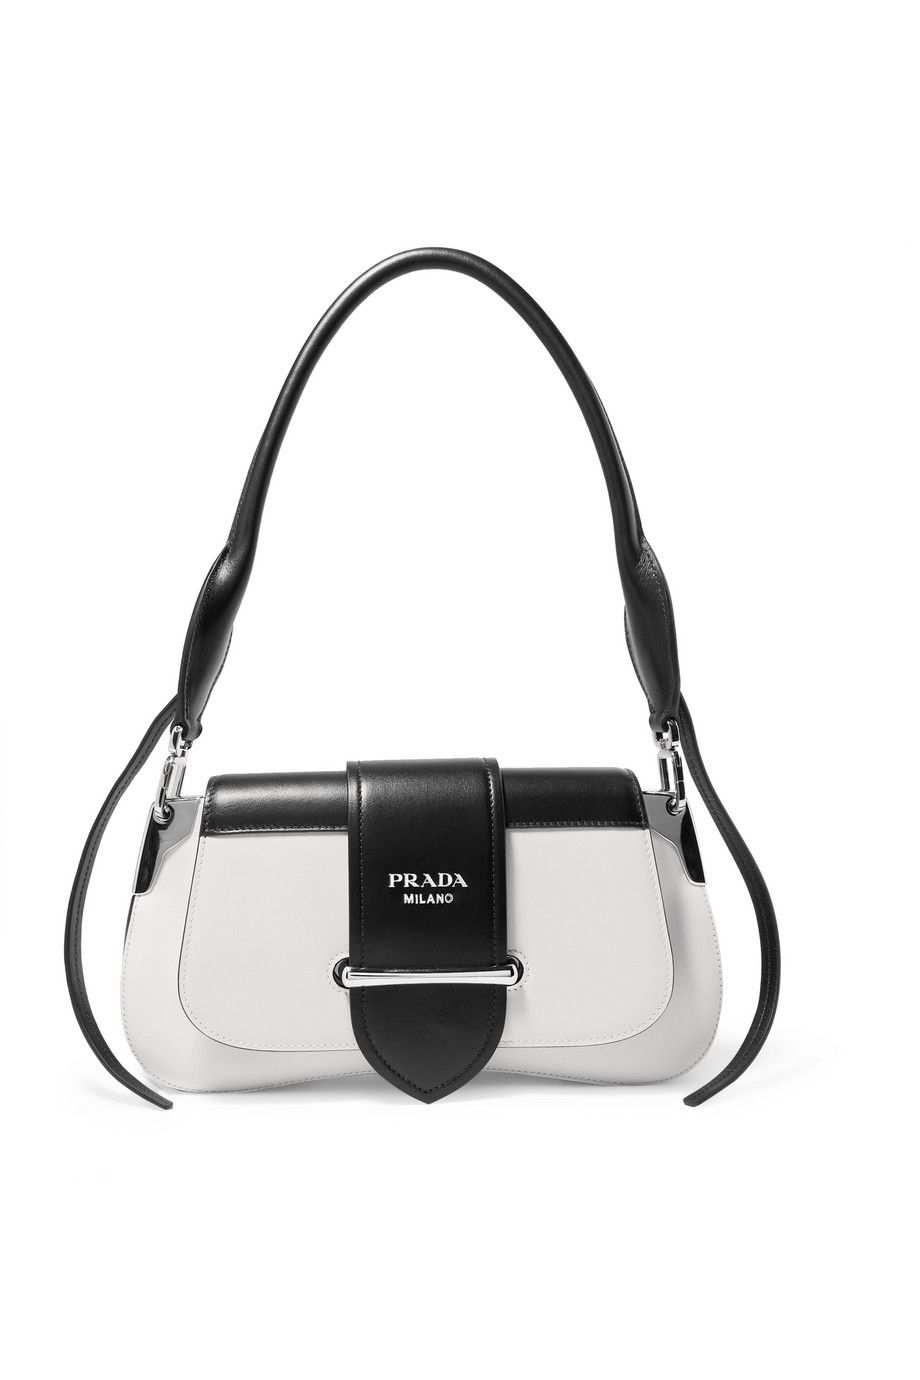 shop-prada-sidonie-white-black-leather-shoulder-bag